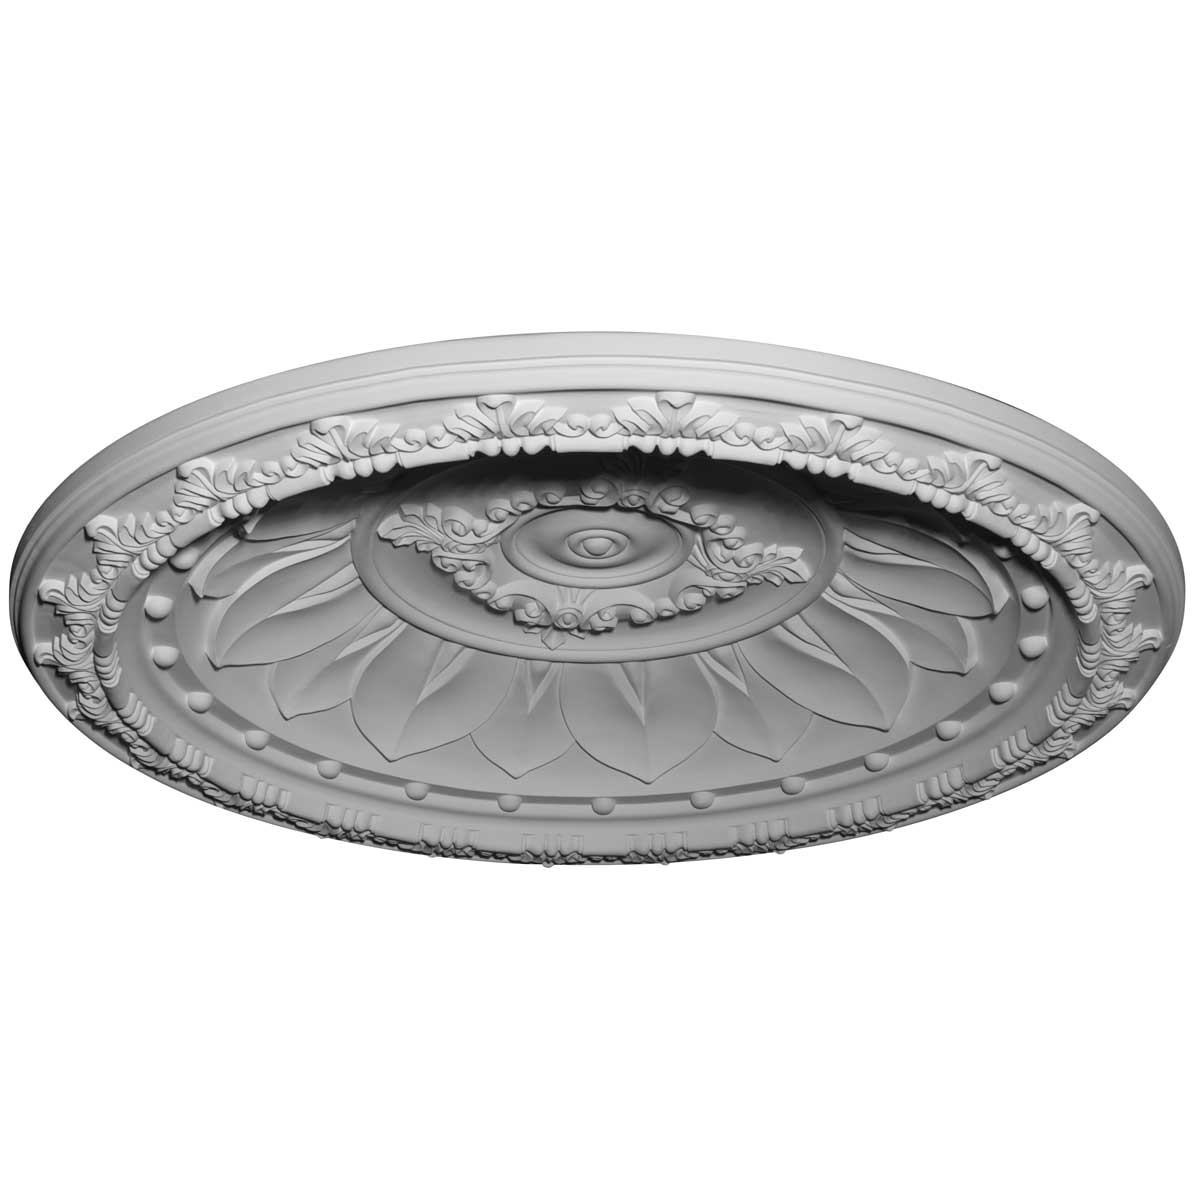 """DOME47ST 47-1/4""""OD x 39-3/8""""ID x 6-3/8""""D Stockport Recessed Mount Ceiling Dome (41""""Diameter x 5-1/4""""D Rough Opening)"""